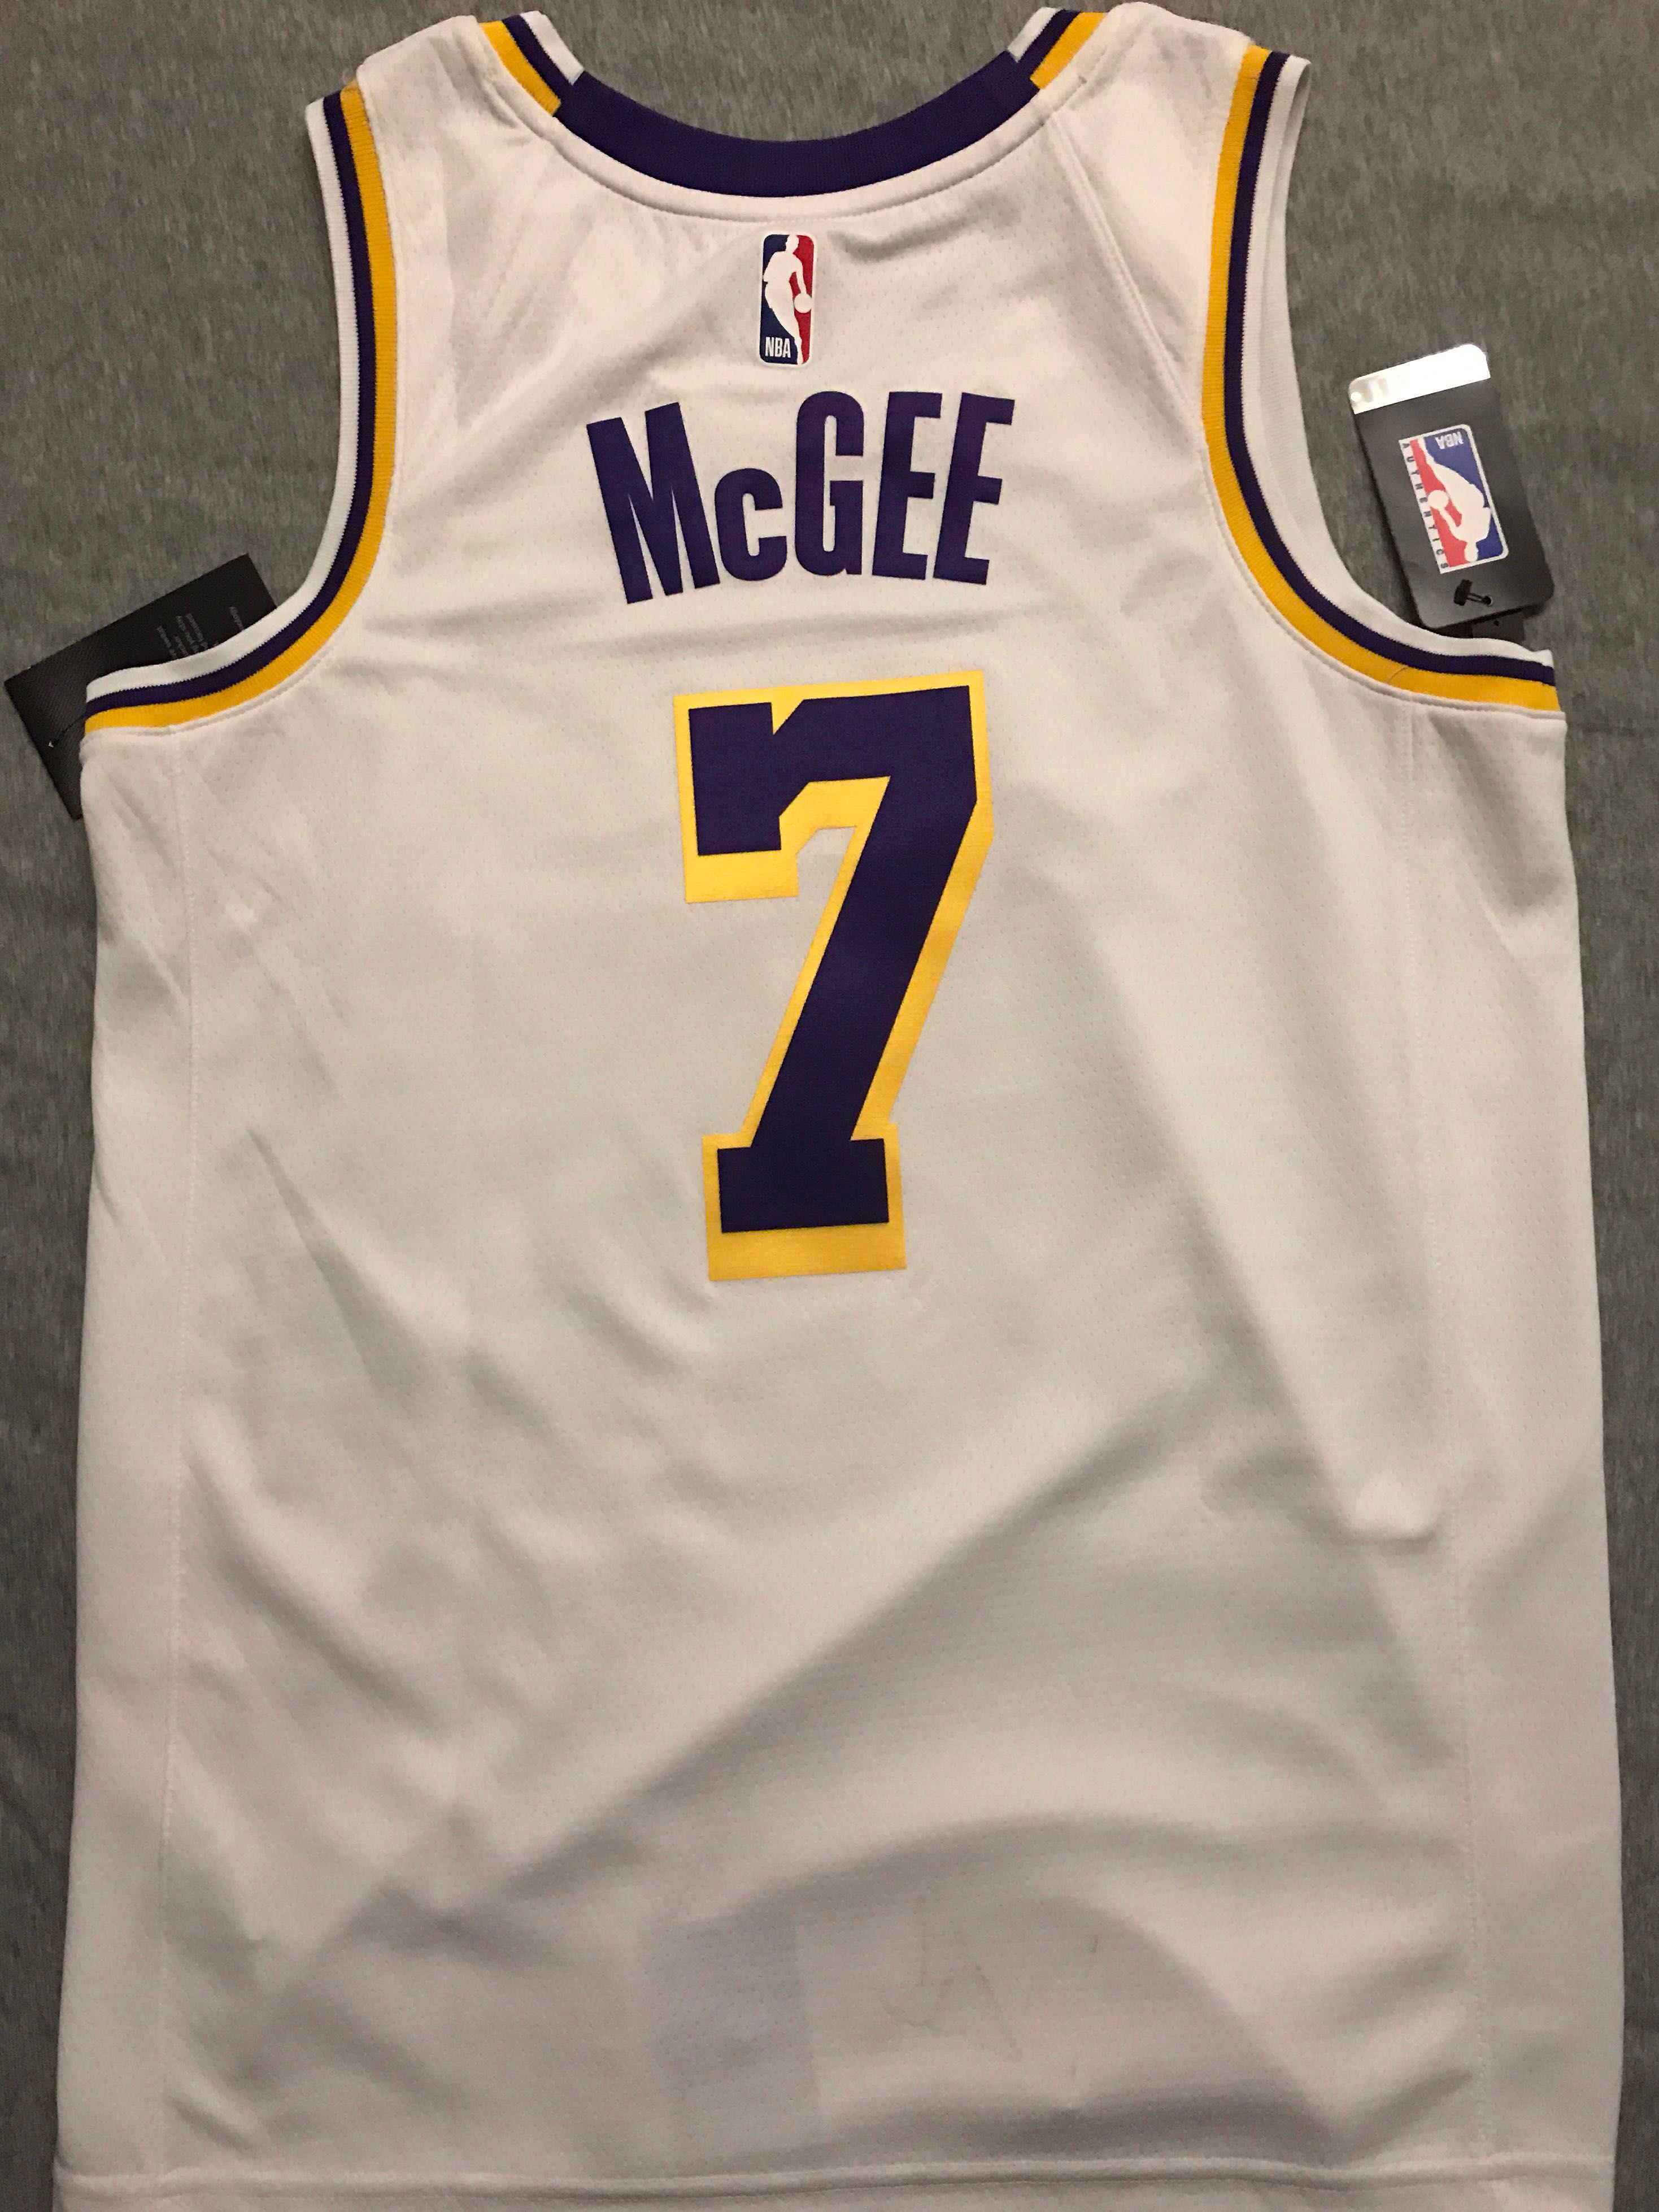 timeless design 9e537 12f0b Javal McGee Lakers swingman jersey